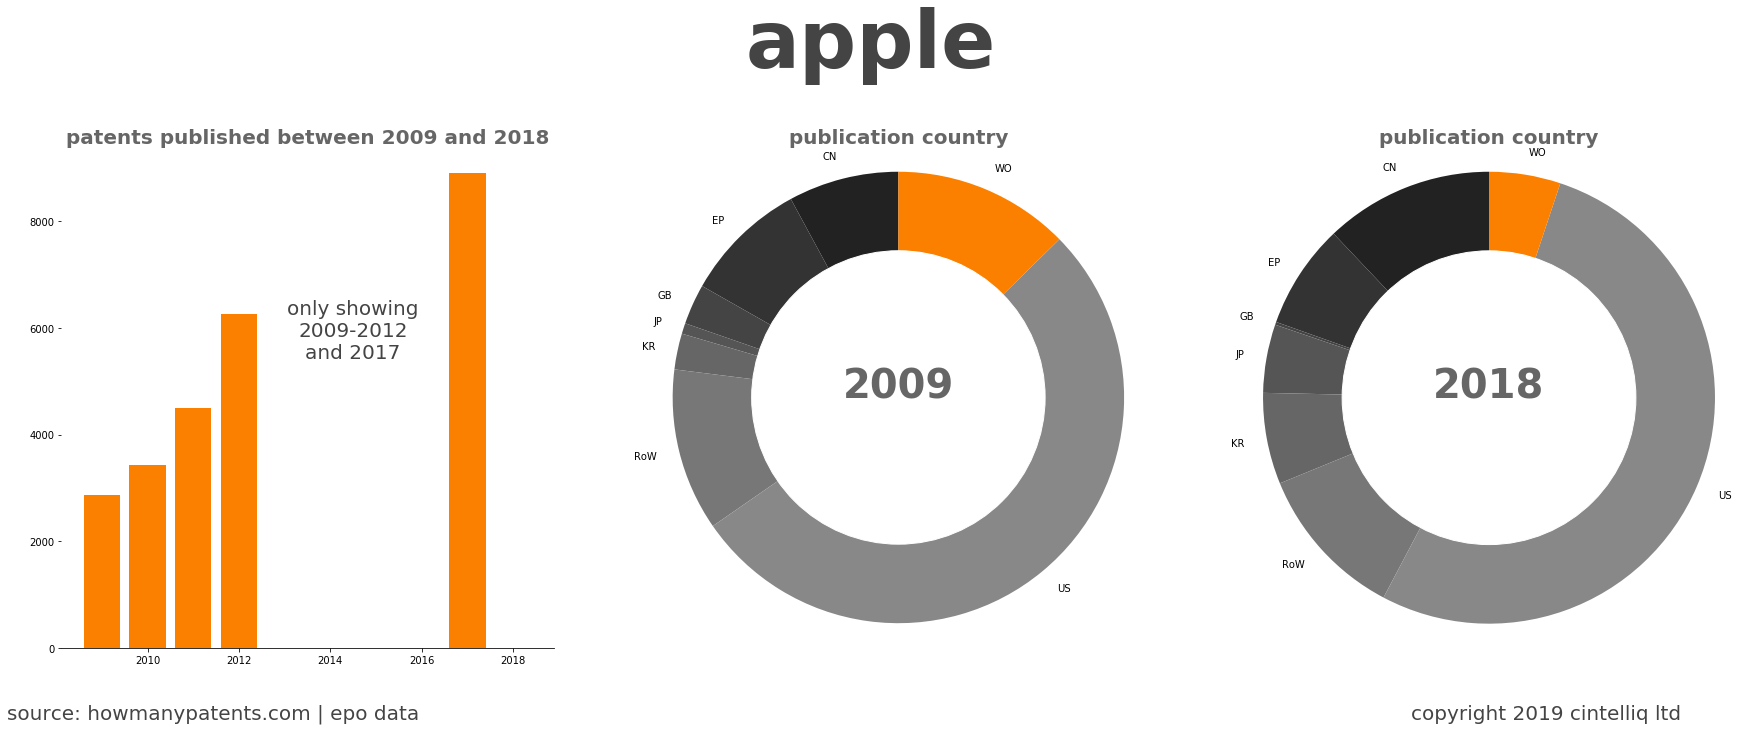 summary of patents for Apple